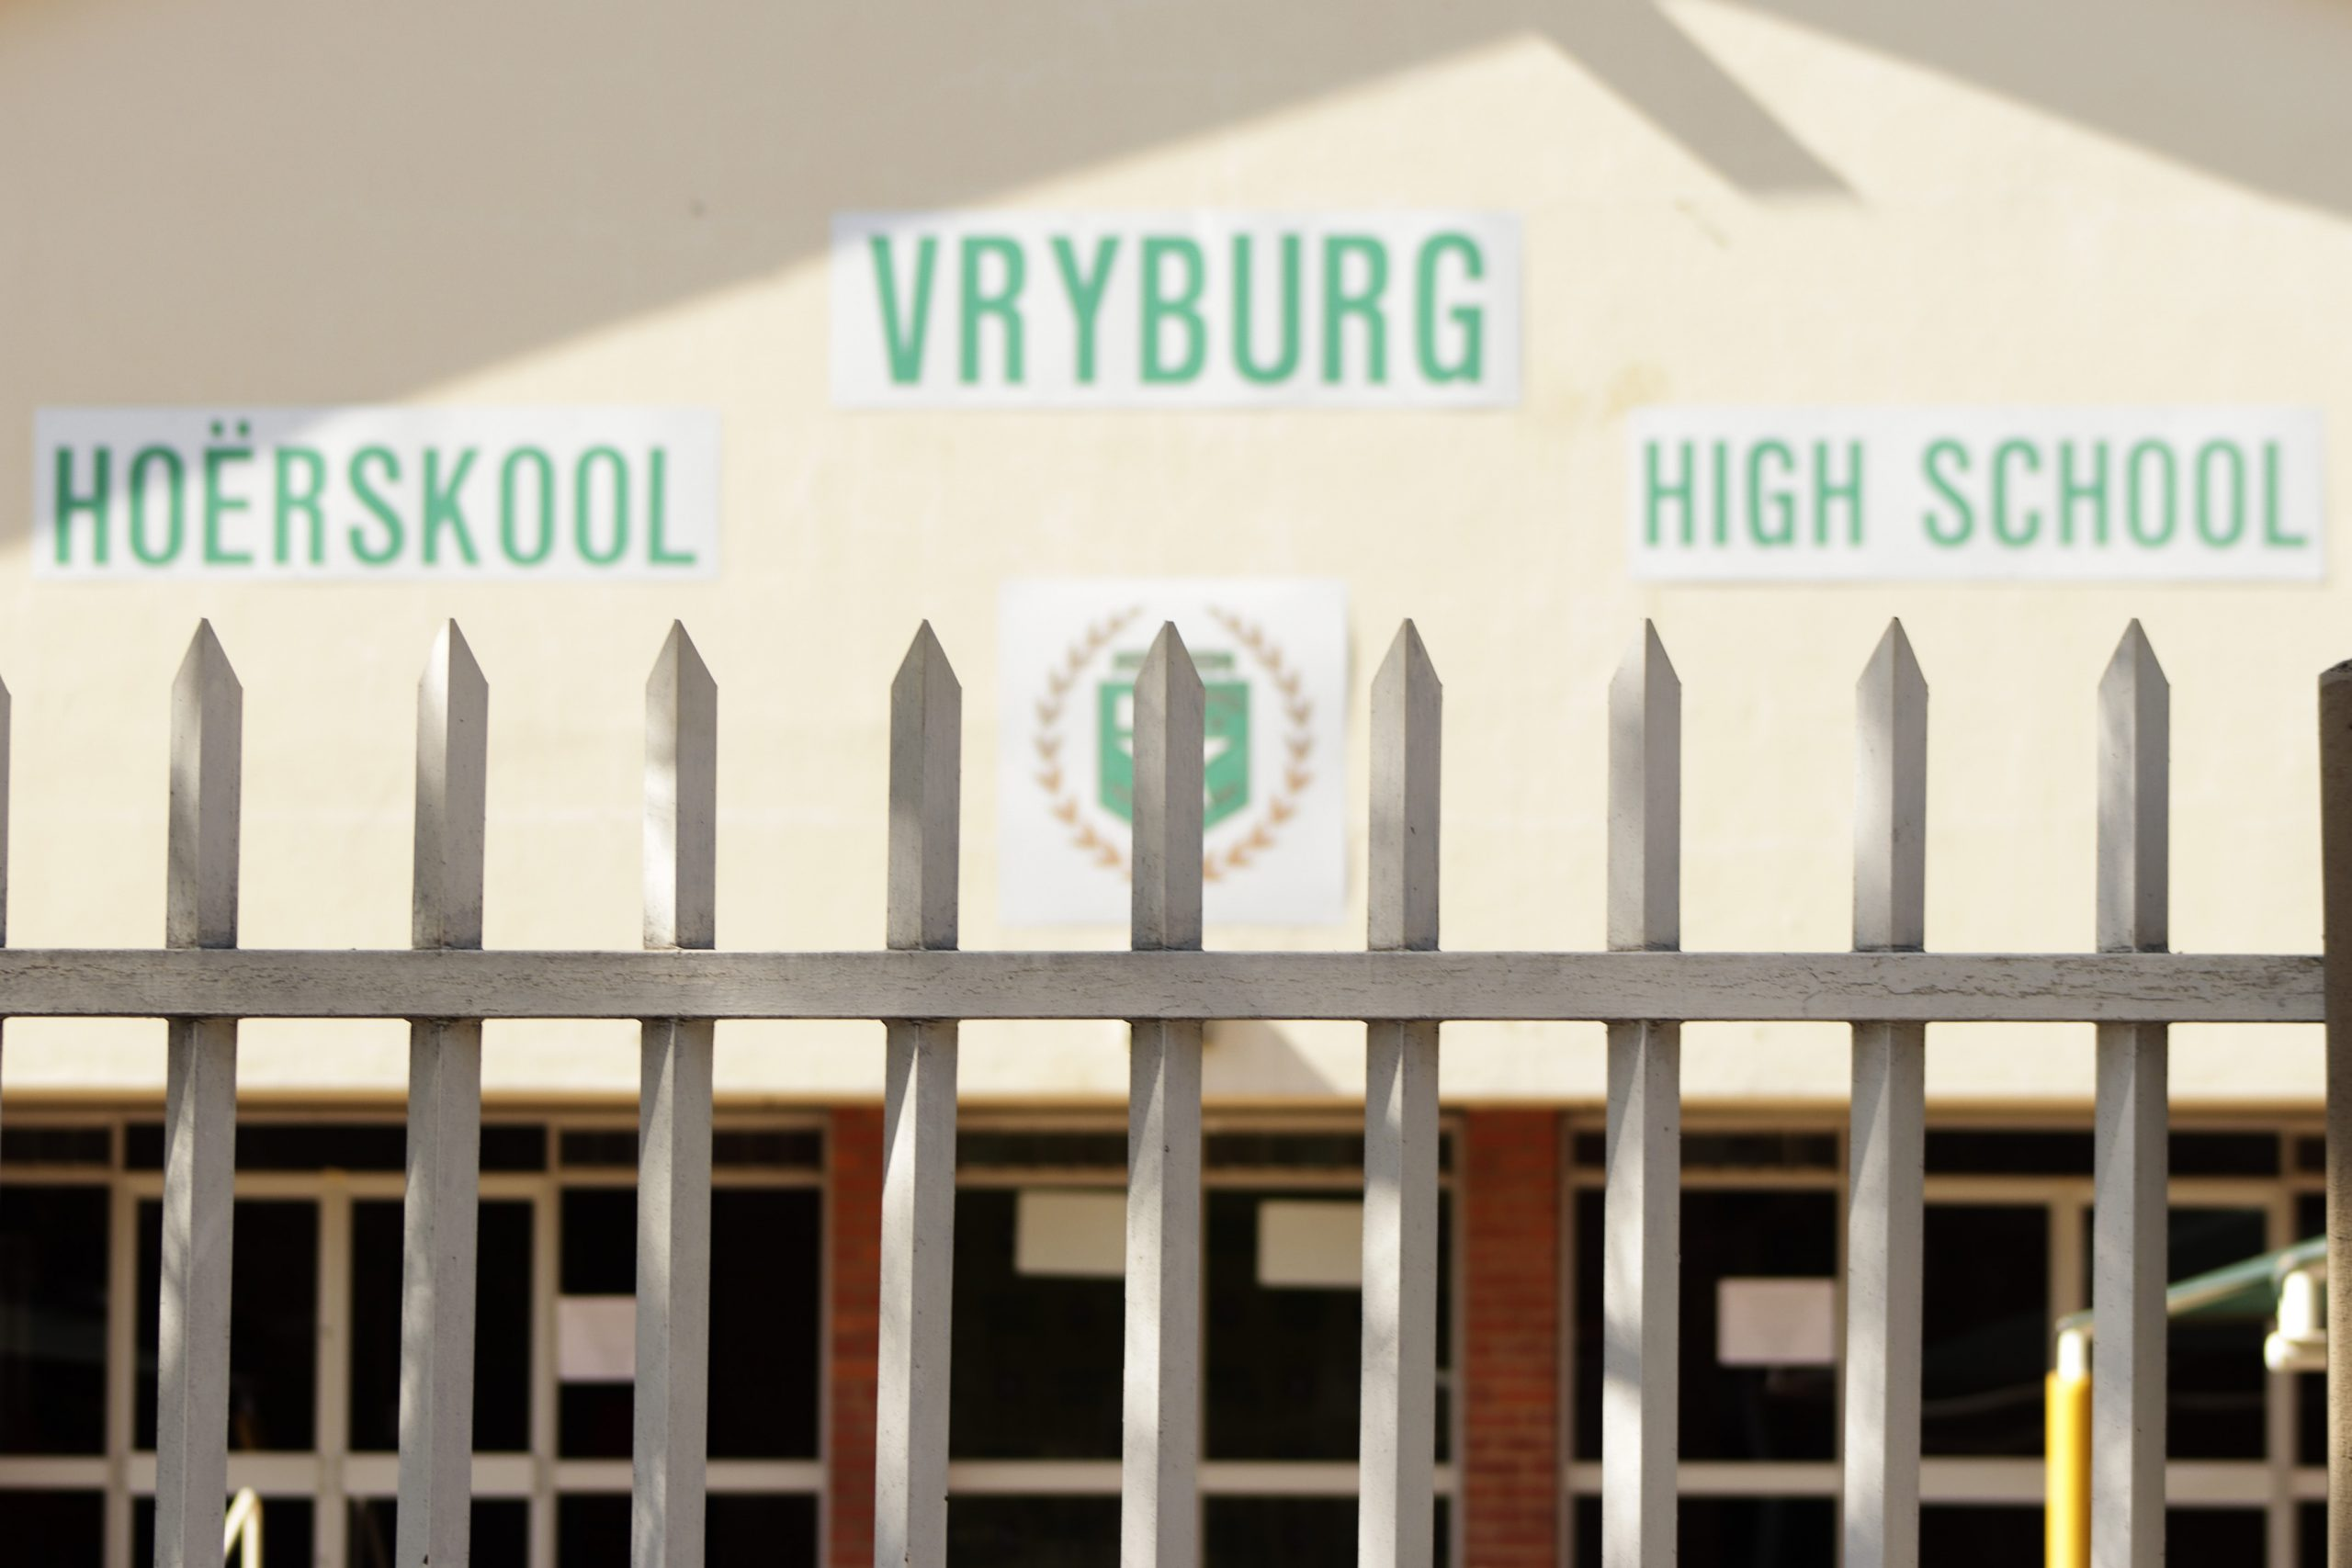 19 July 2020: As time moved on, Vryburg High School had to adapt, but it still has had only one black principal in its entire history. (Photograph by Gaoretelelwe Molebalwa)